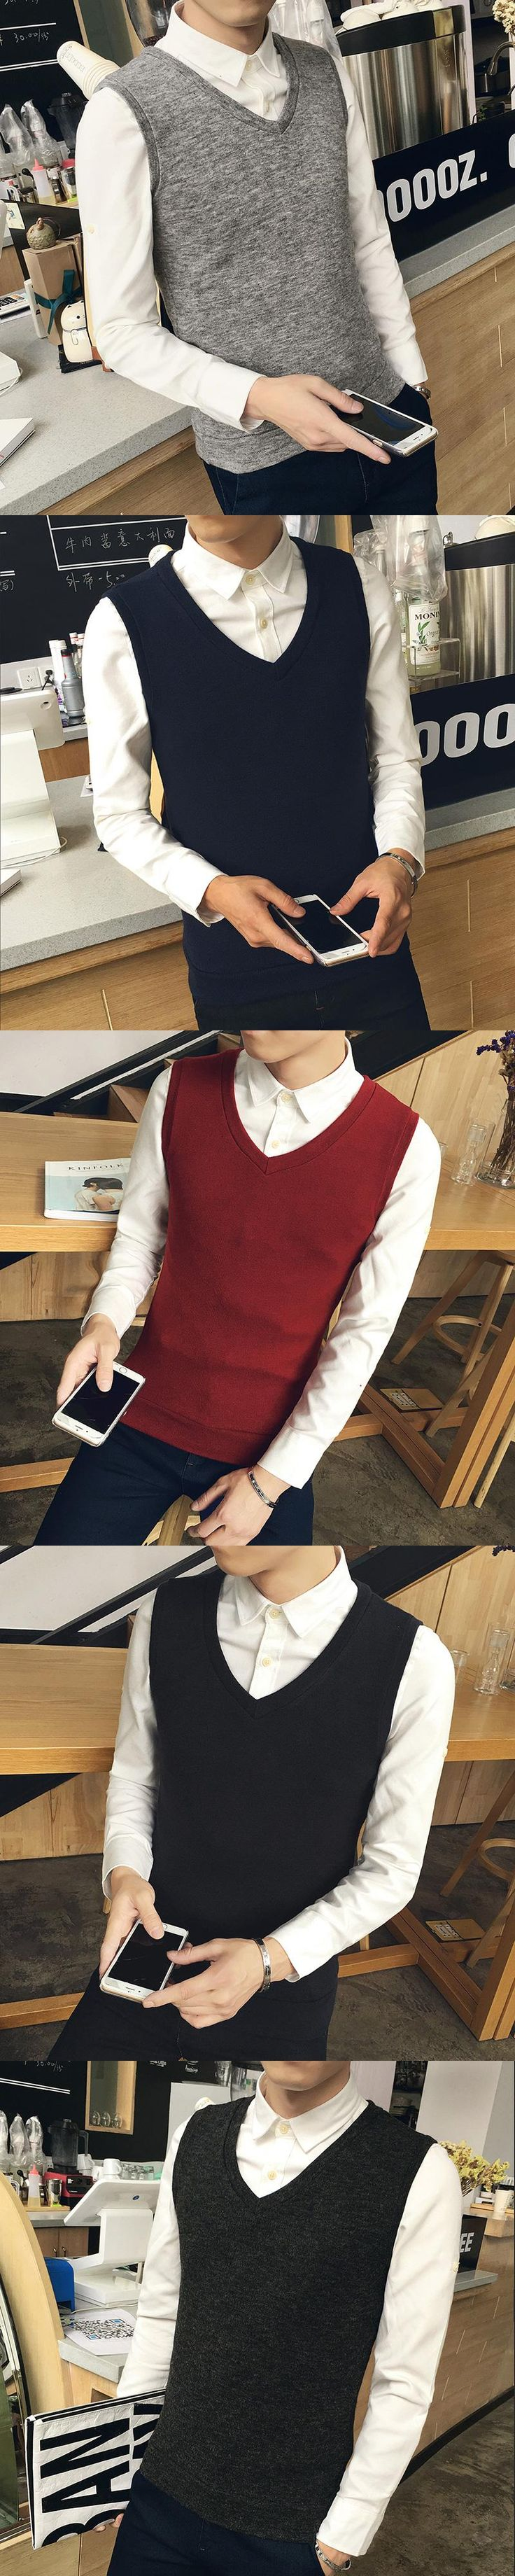 2017 Autumn Men's Casual Sweater Vest, Fashion Winter Warm Sweater, Solid Color V-necked Sleeveless Sweater  S-XXL Blue, Black